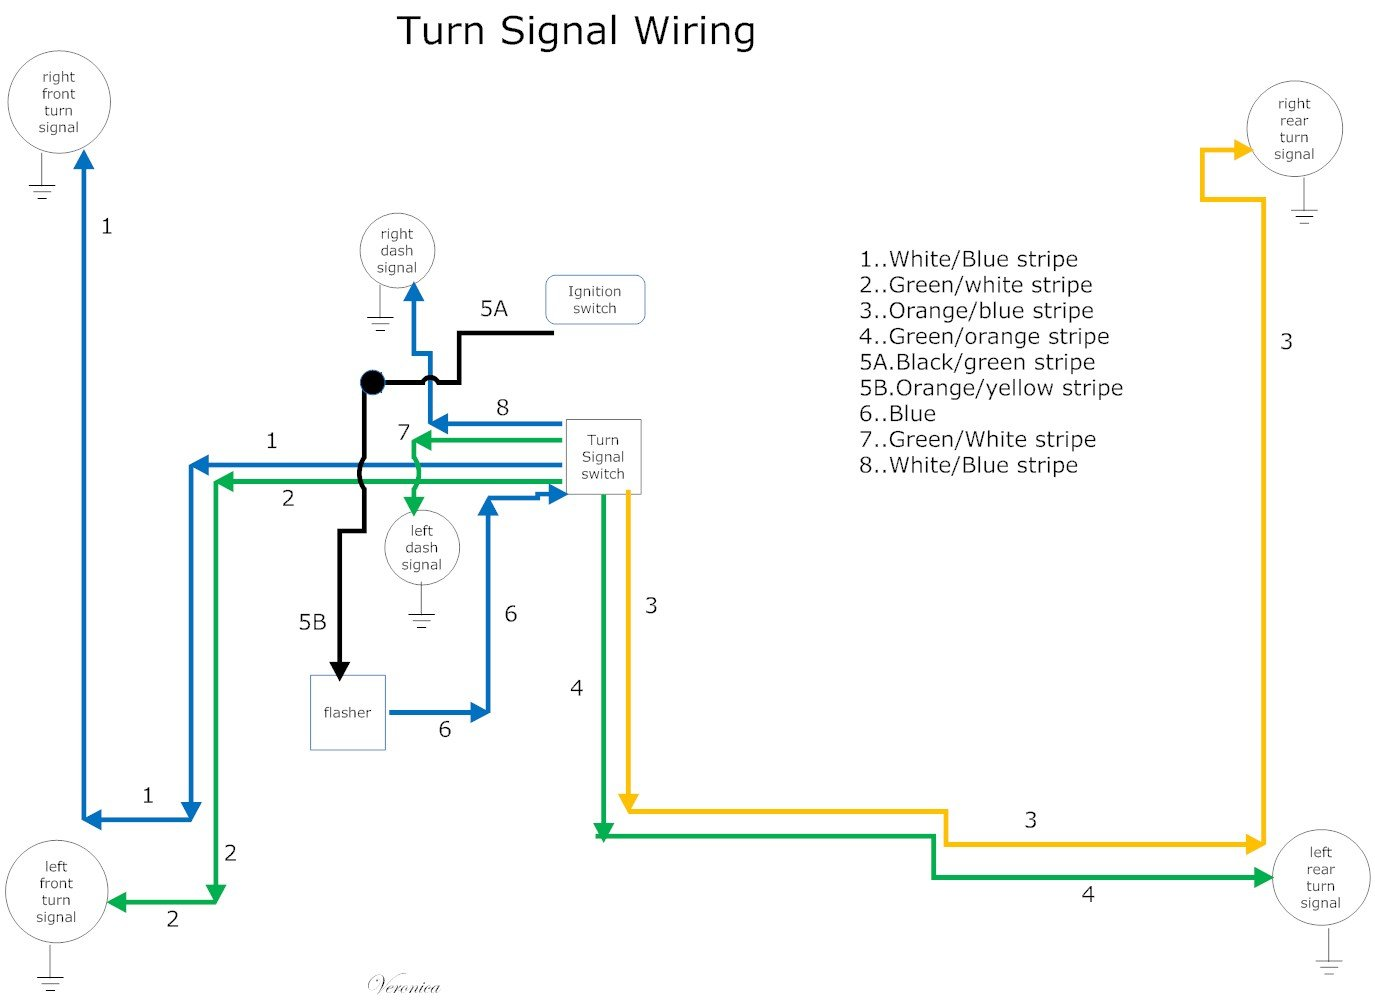 66 Mustang Turn Signal Wiring Diagram - wiring diagram installation-start -  installation-start.salatinosimone.it | Turn Signal Wiring Diagram For 1966 Mustang |  | salatinosimone.it